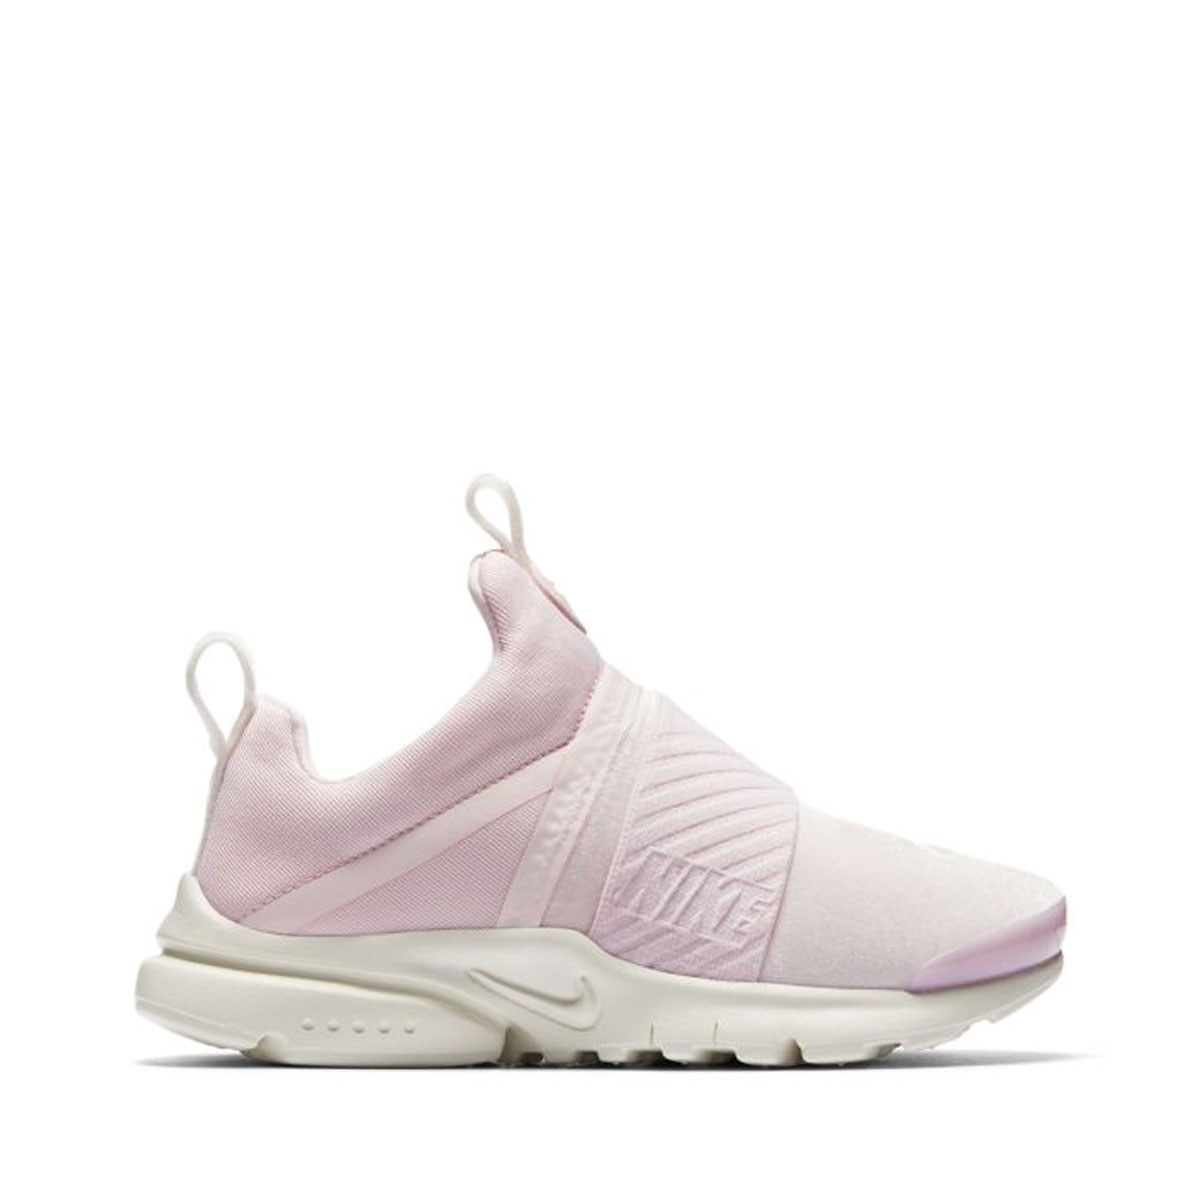 7a956bb9369 maximum point 10 times that is targeted for all articles! NIKE PRESTO  EXTREME SE (PS) (Nike presto extreme SE PS) ARCTIC PINK SAIL-IGLOO 18SP-I